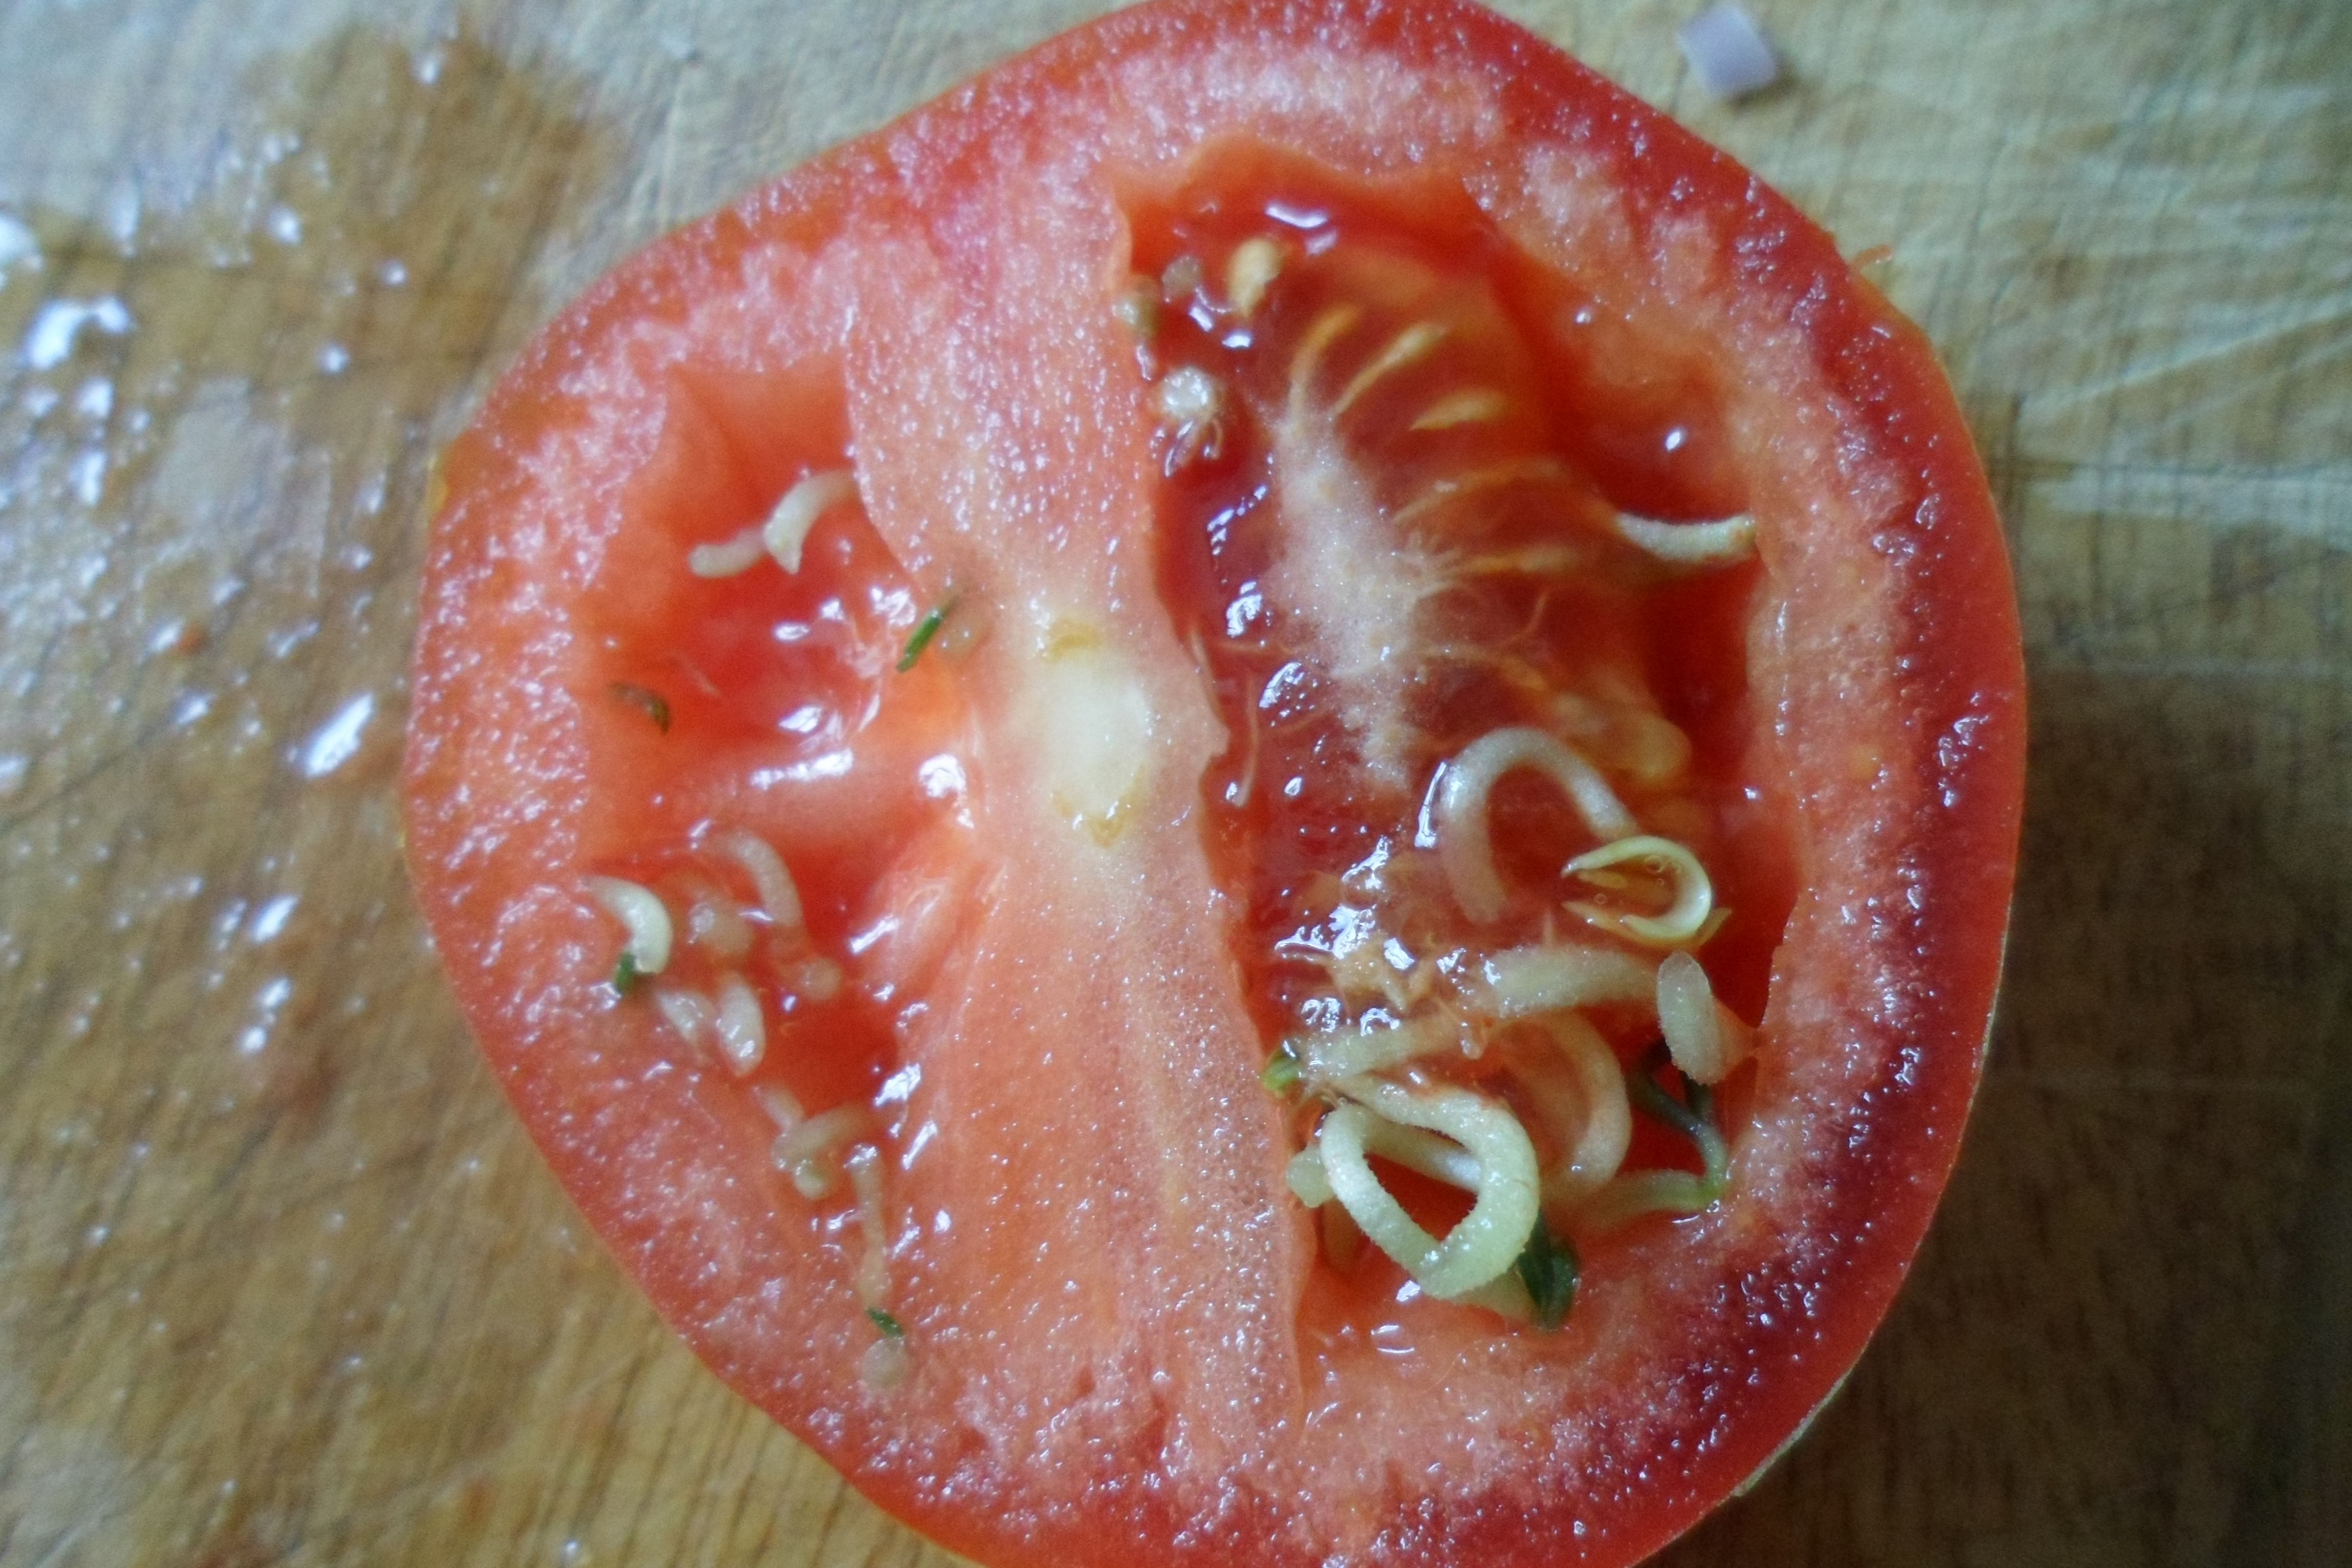 This is a tomato that I cut open. Some of the seeds have  germinated inside the fruit.